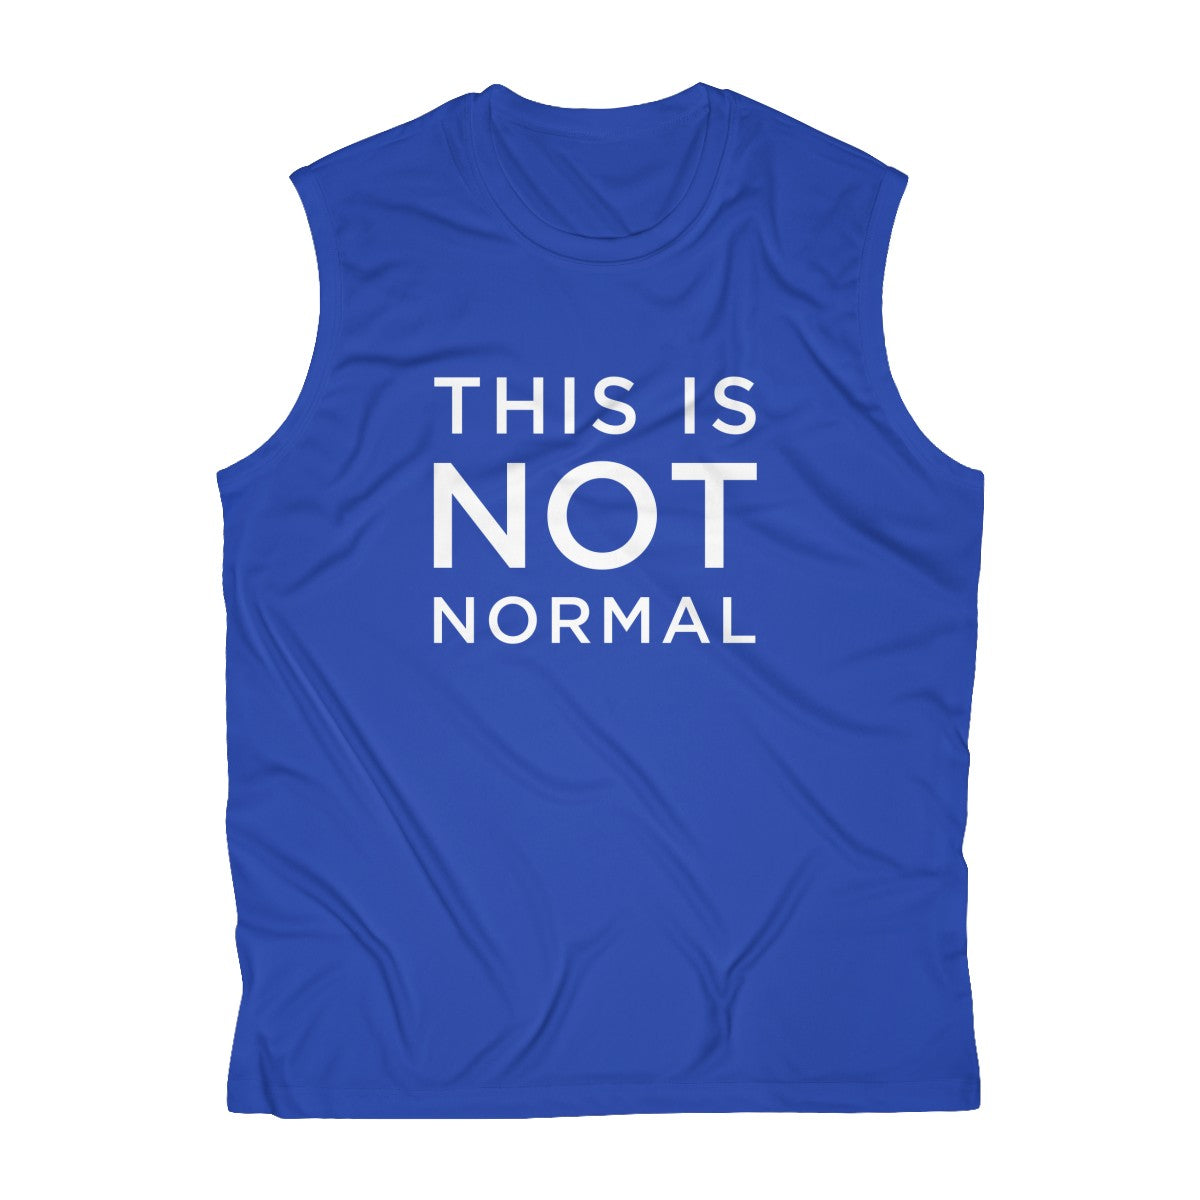 This is Not Normal Men's Sleeveless Performance Tee